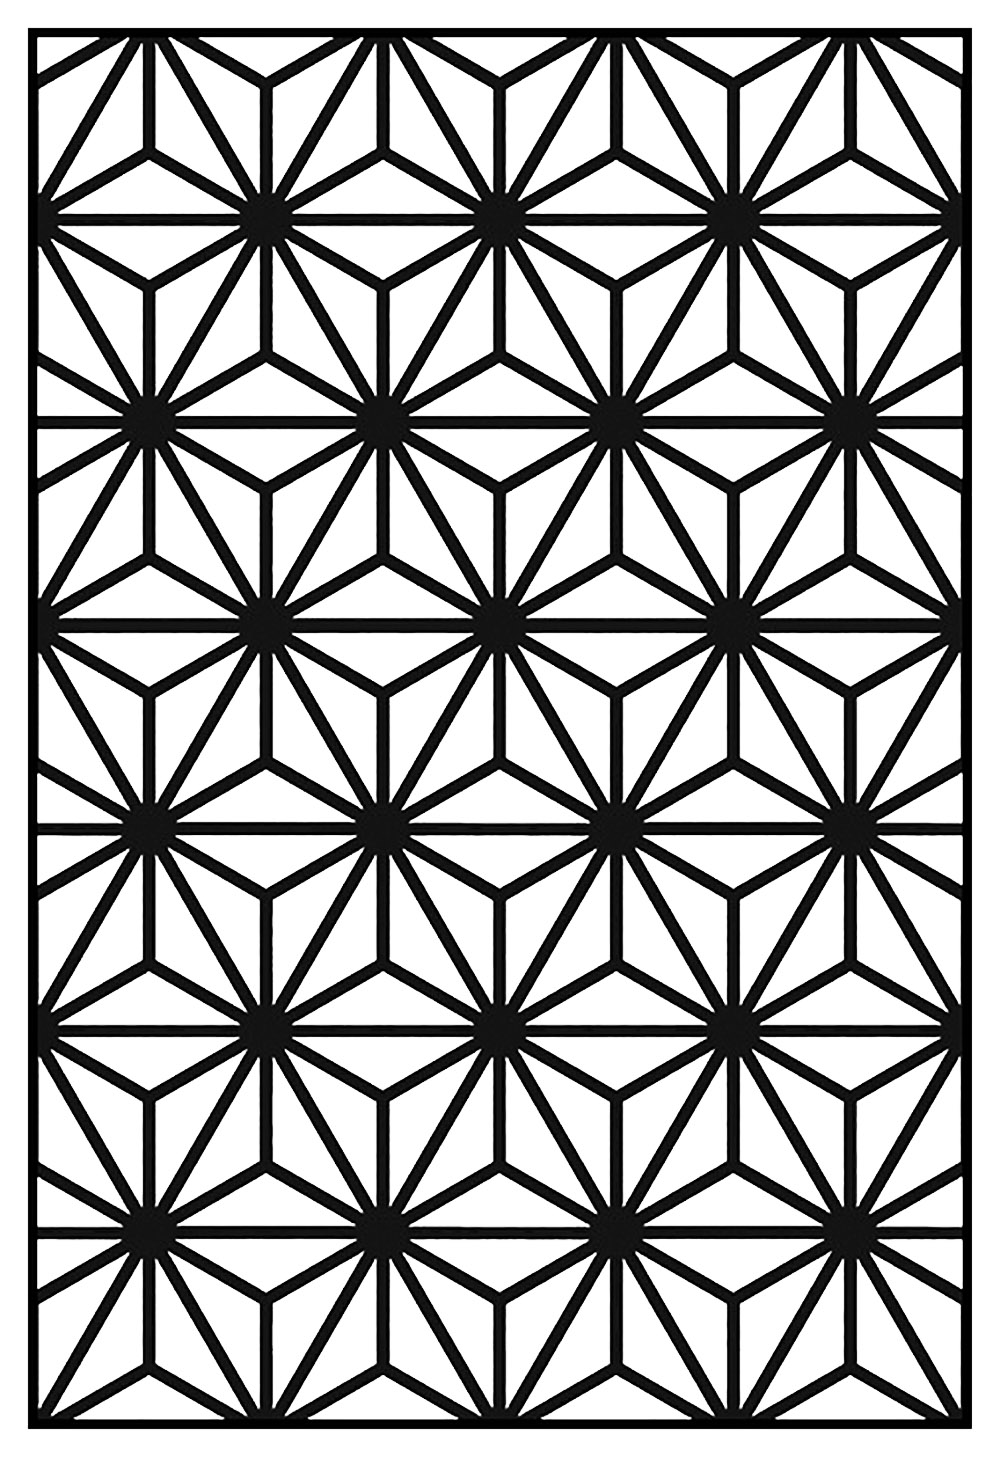 - Geometric Patterns Art Deco 10 - Art Deco Adult Coloring Pages